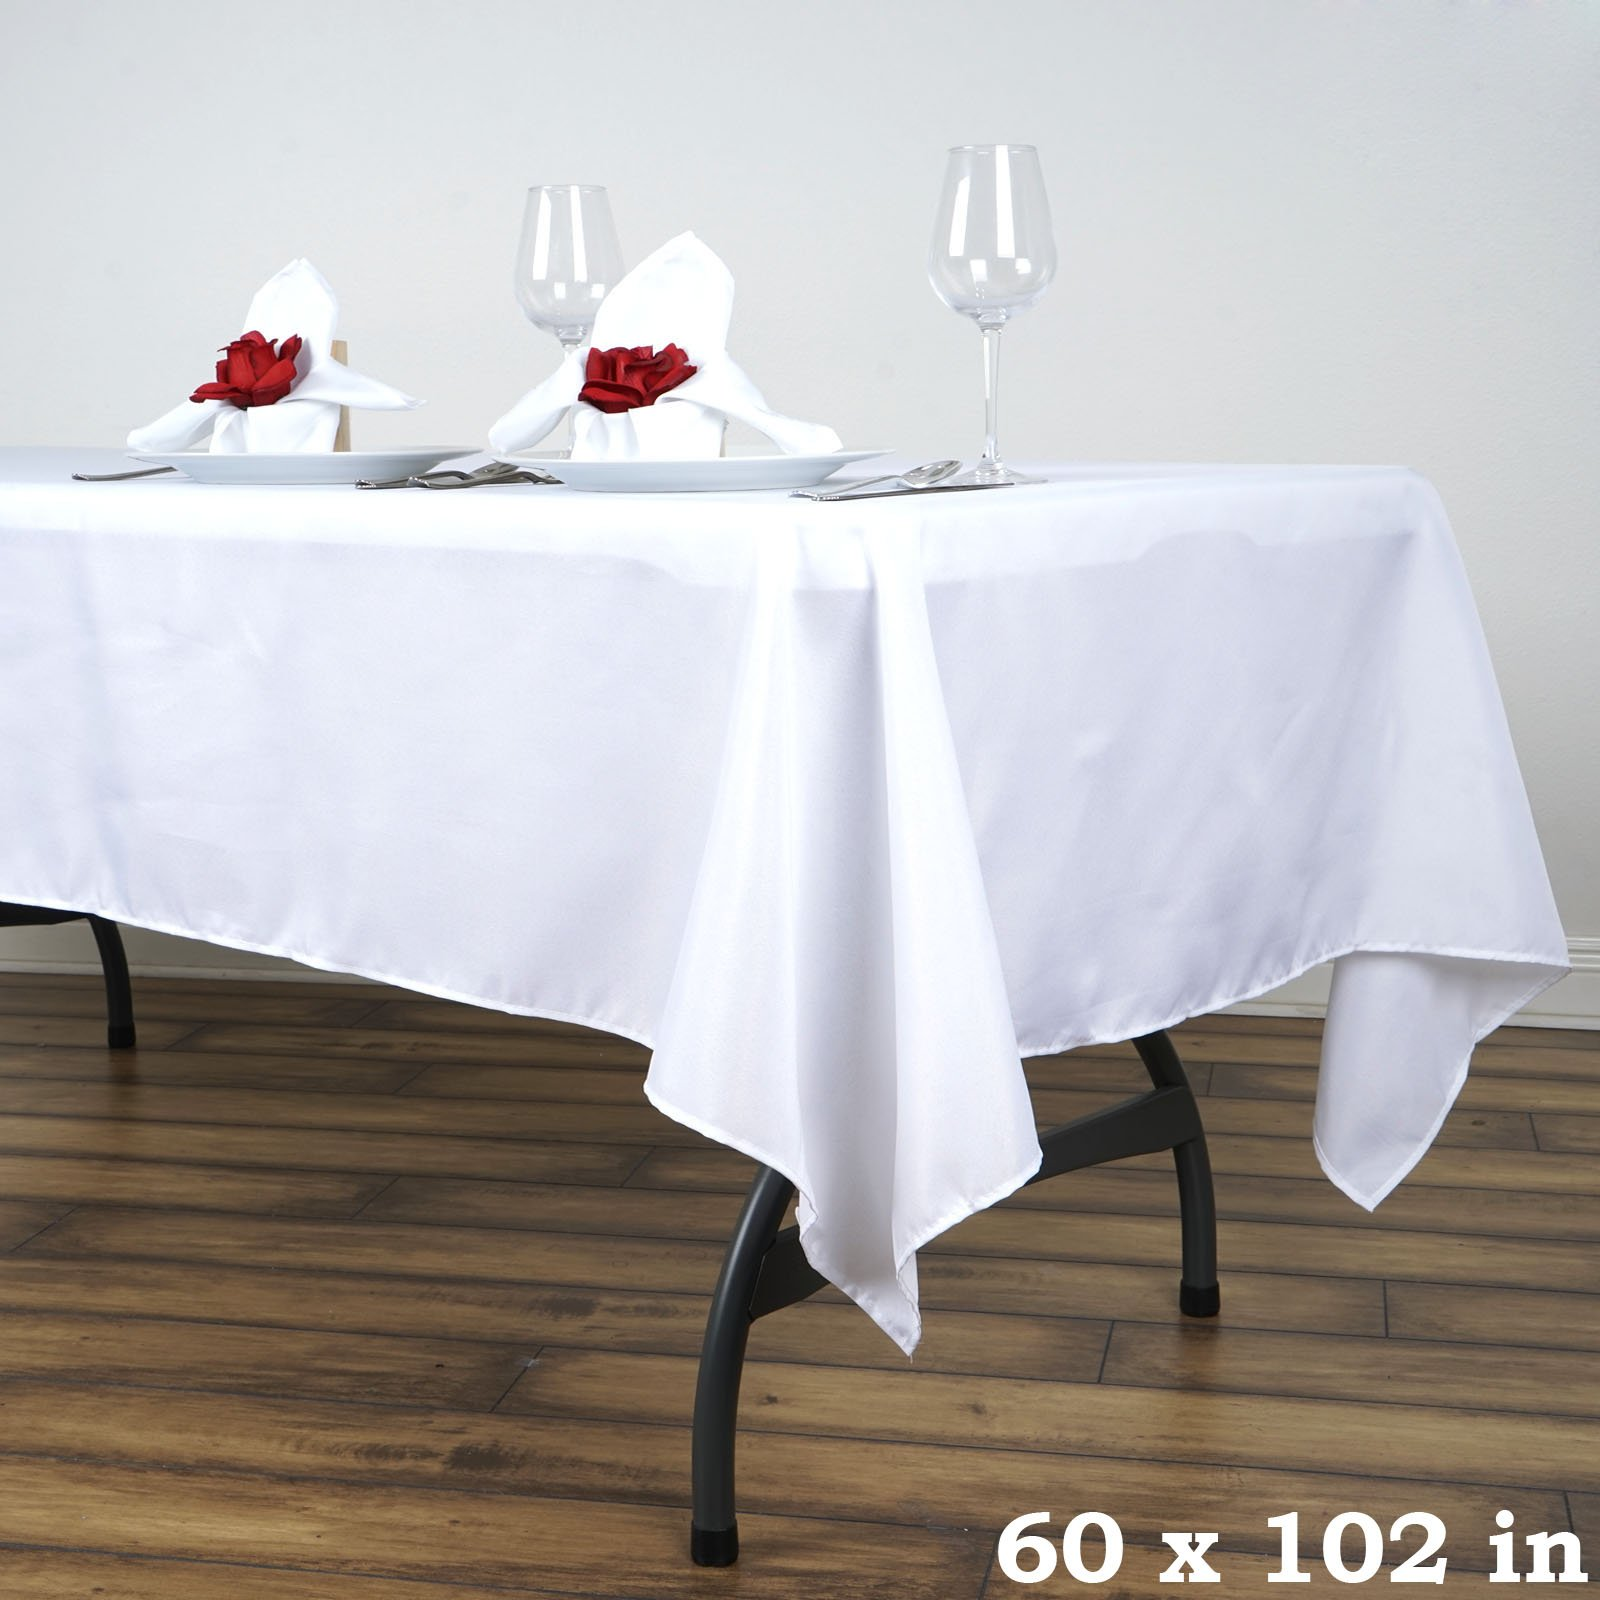 Efavormart 5pcs of White 60x102 Polyester Rectangle Tablecloths Banquet Linen Wedding Party Restaurant Tablecloth by Efavormart (Image #2)